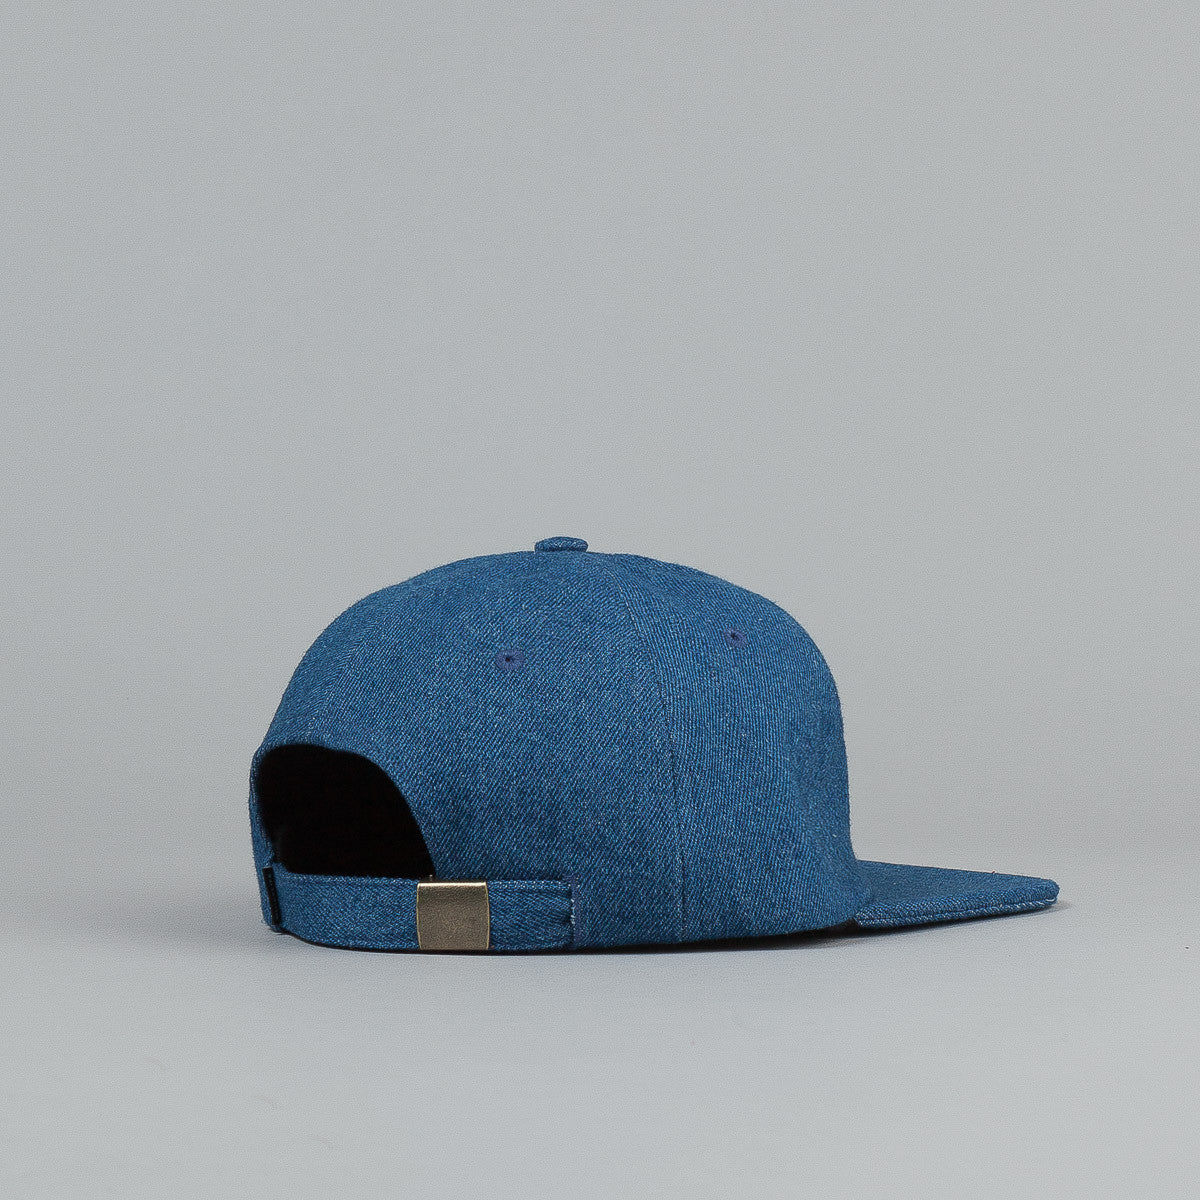 The Quiet Life Denim Polo Cap - Medium Blue Denim